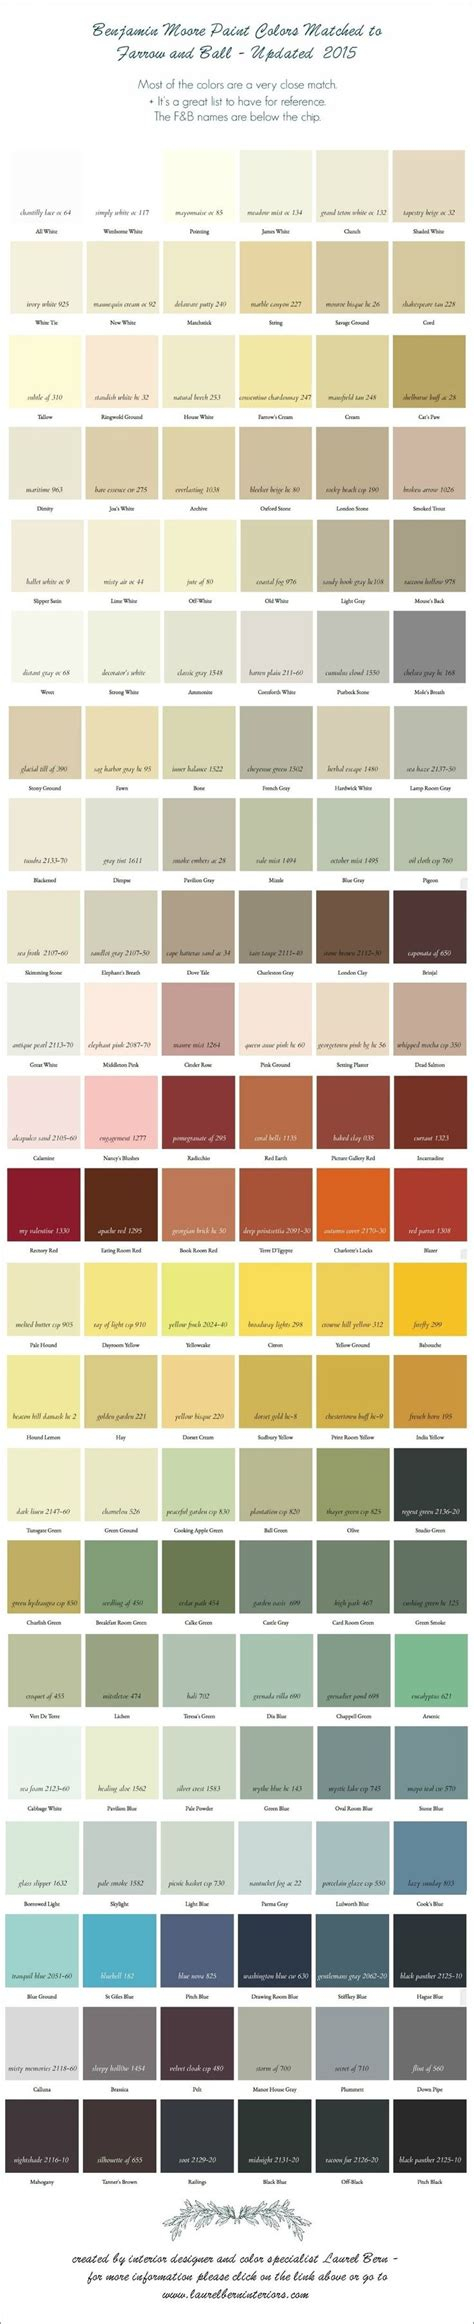 light paint colors benjamin moore paint colors matched to farrow and ball